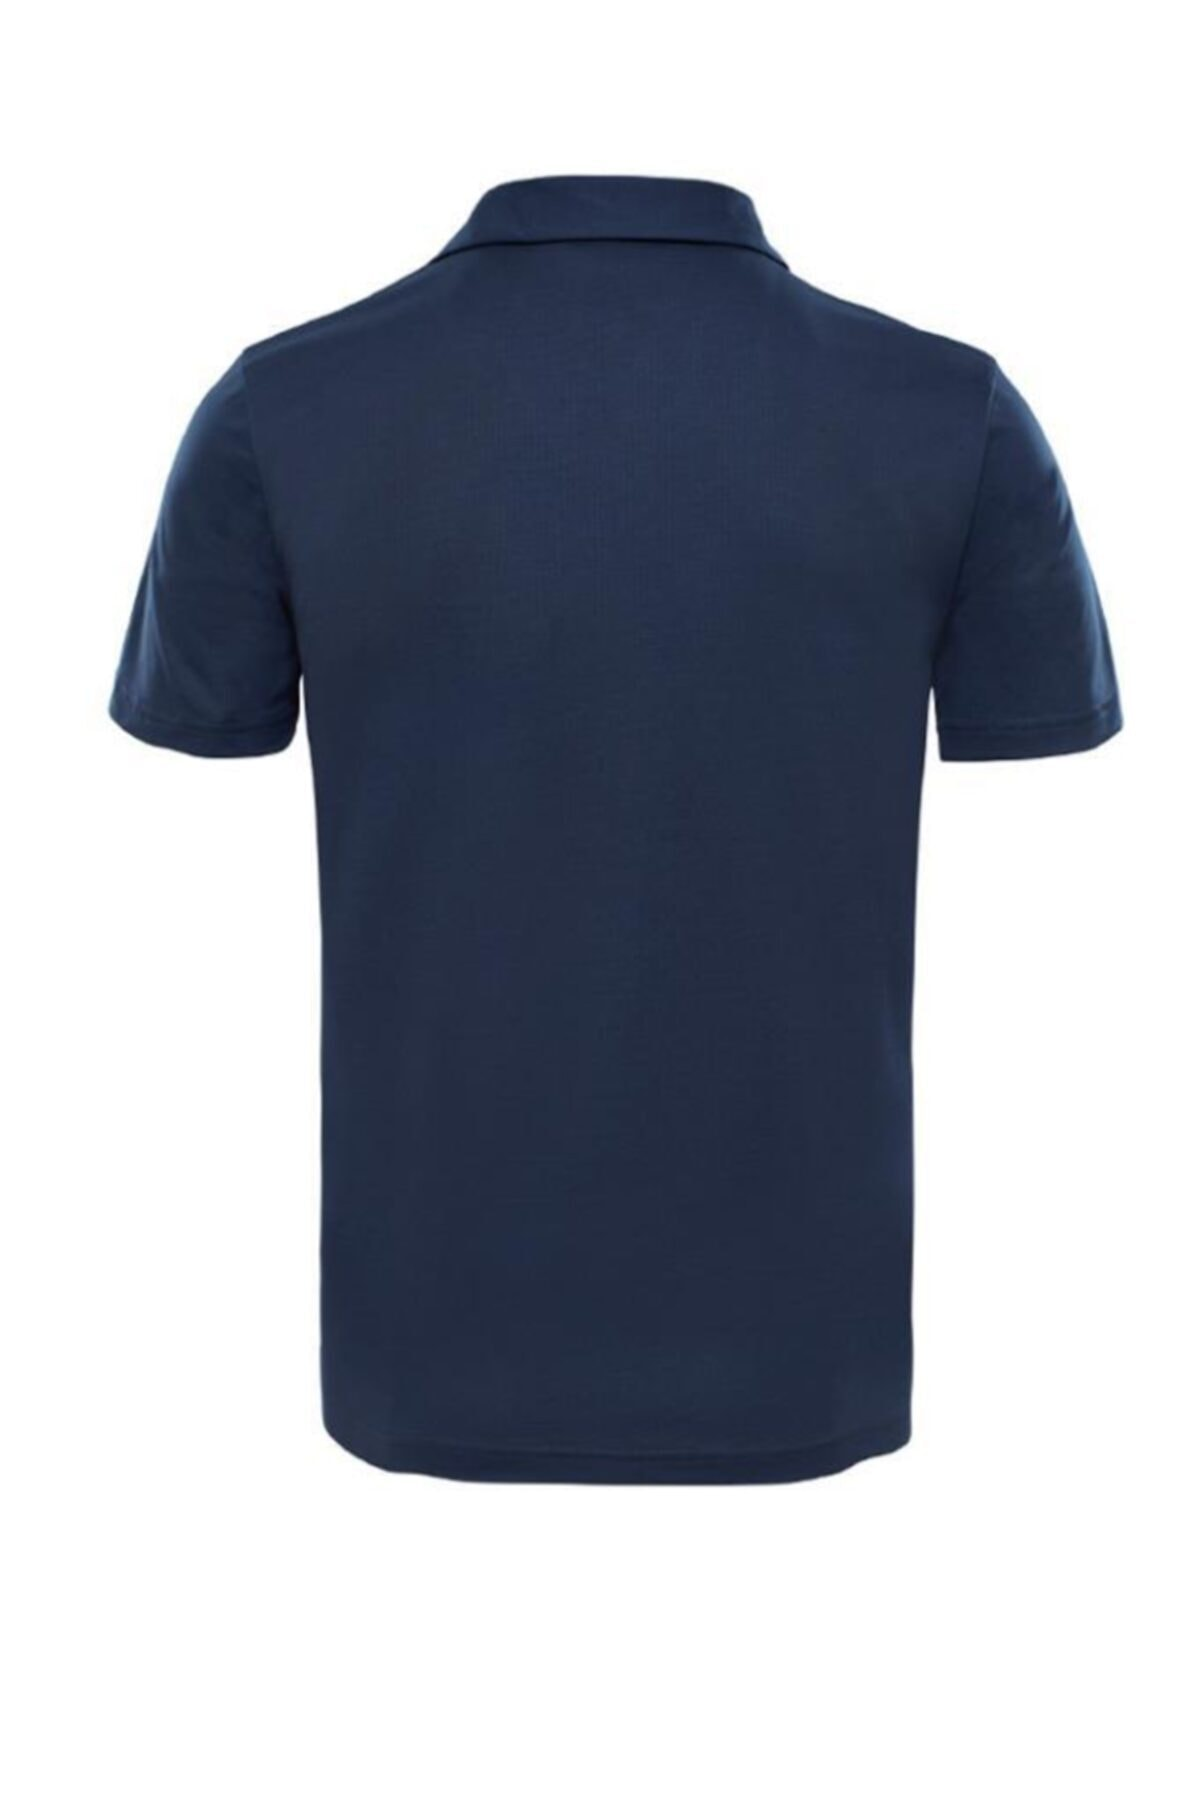 THE NORTH FACE Tanken Polo T-shirt - Lacivert (Nf0a2wazh2g) 2